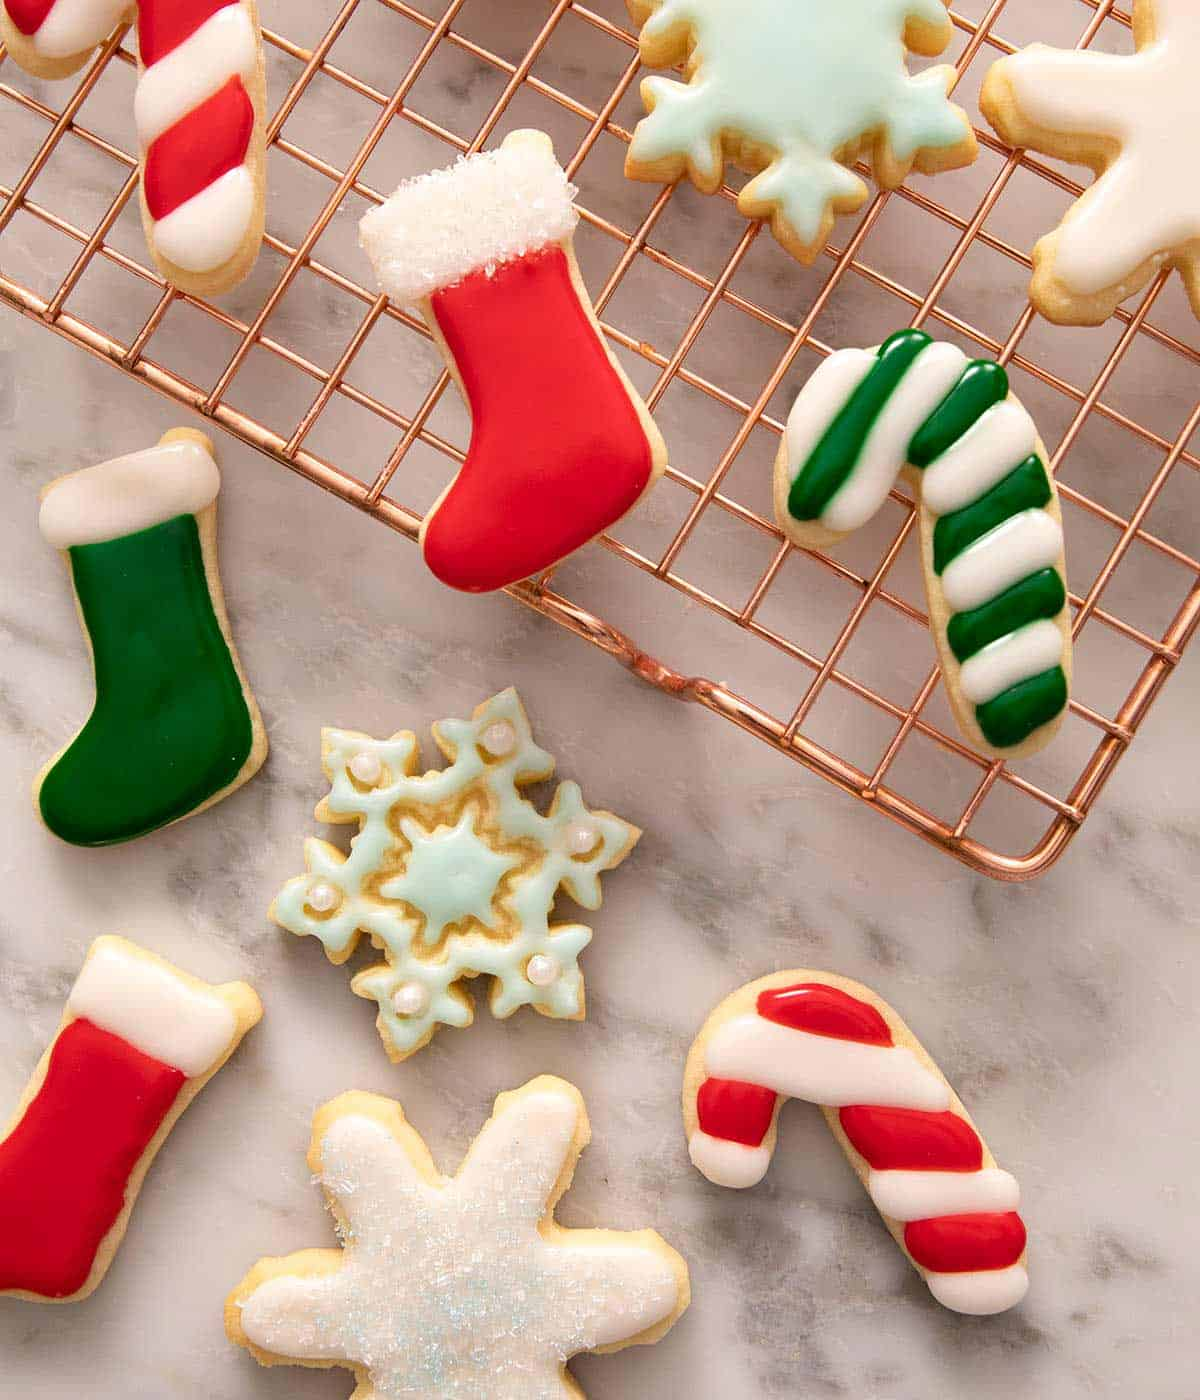 An overhead shot of different festive cookies with colored sugar cookie icing